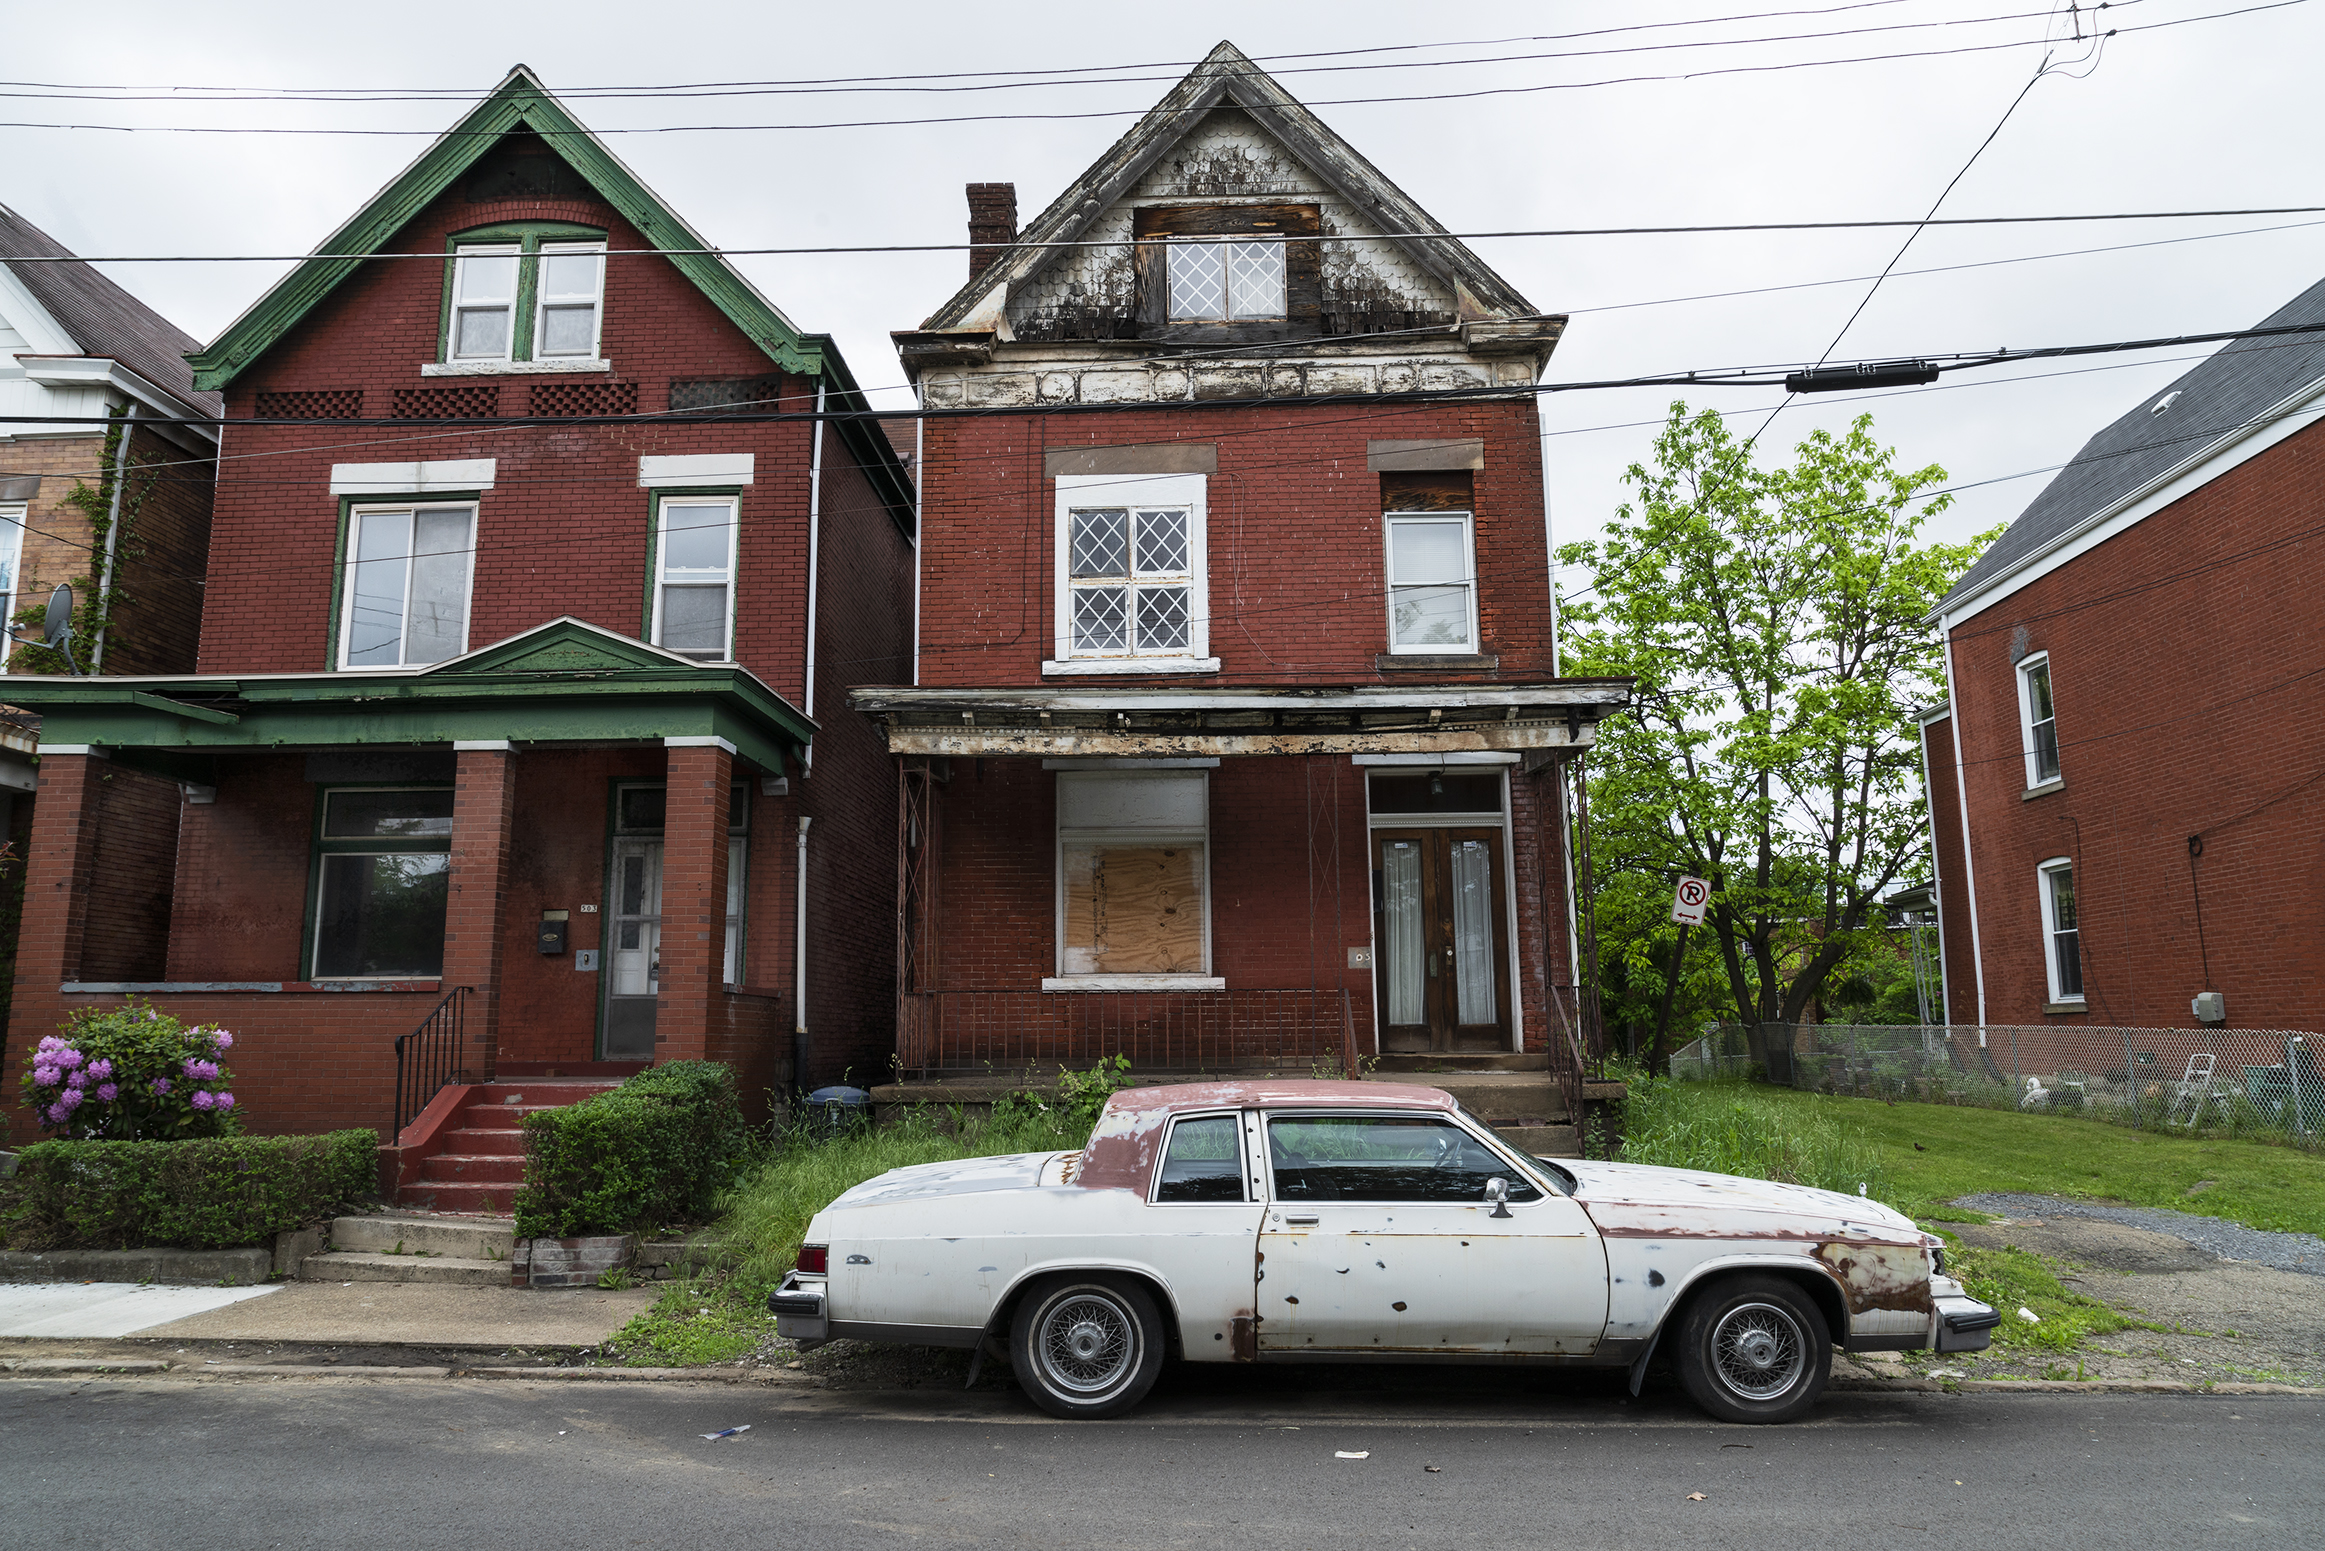 Brick House with Old Car, Pittsburgh 2018